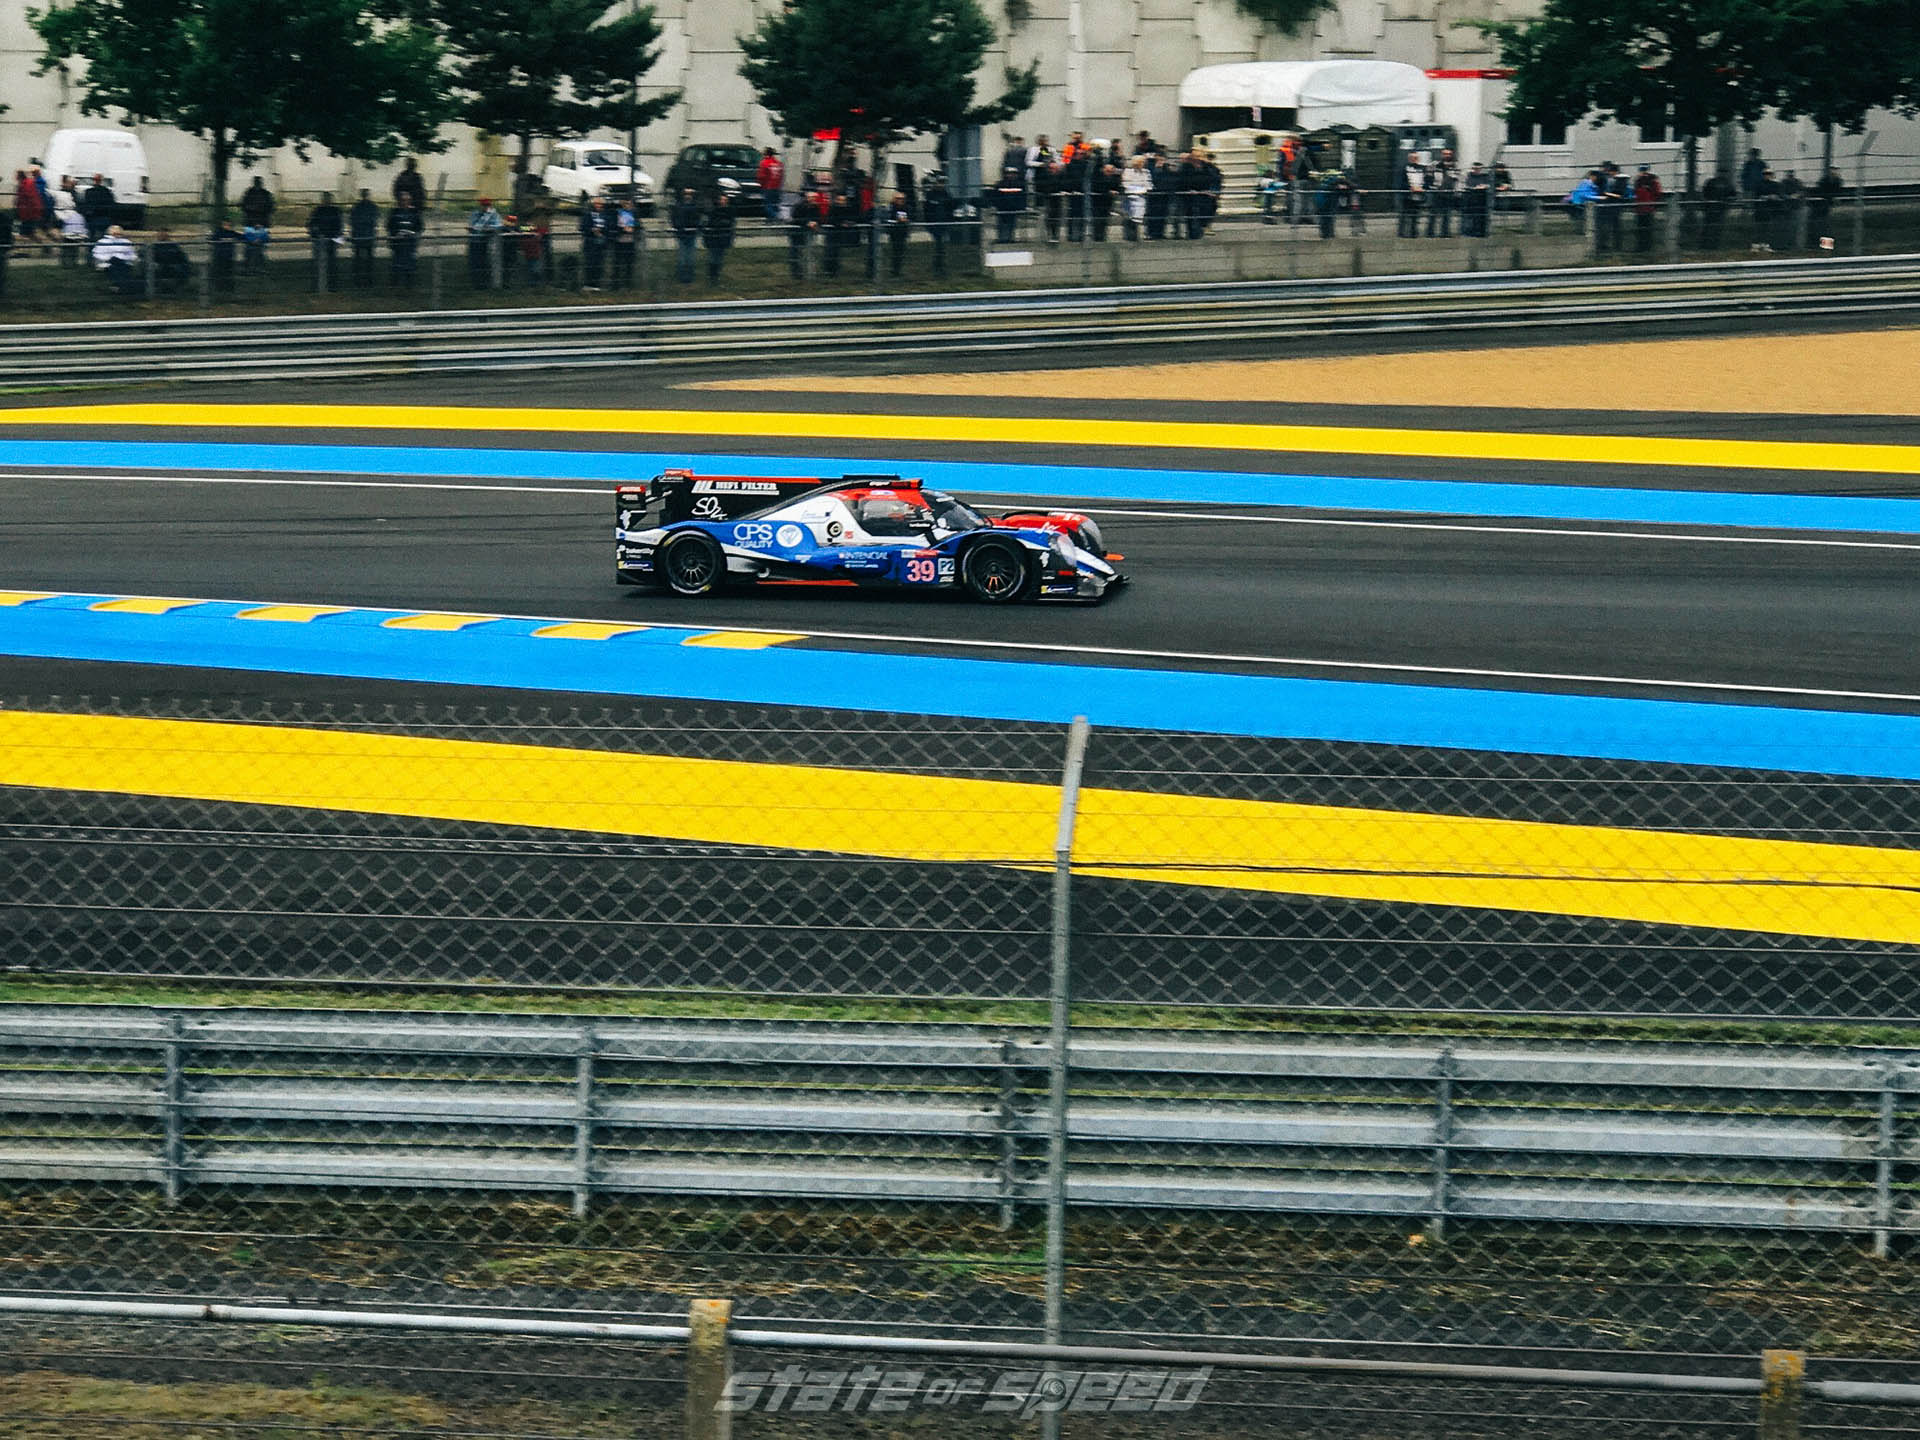 Coming out of the apex at Le Mans